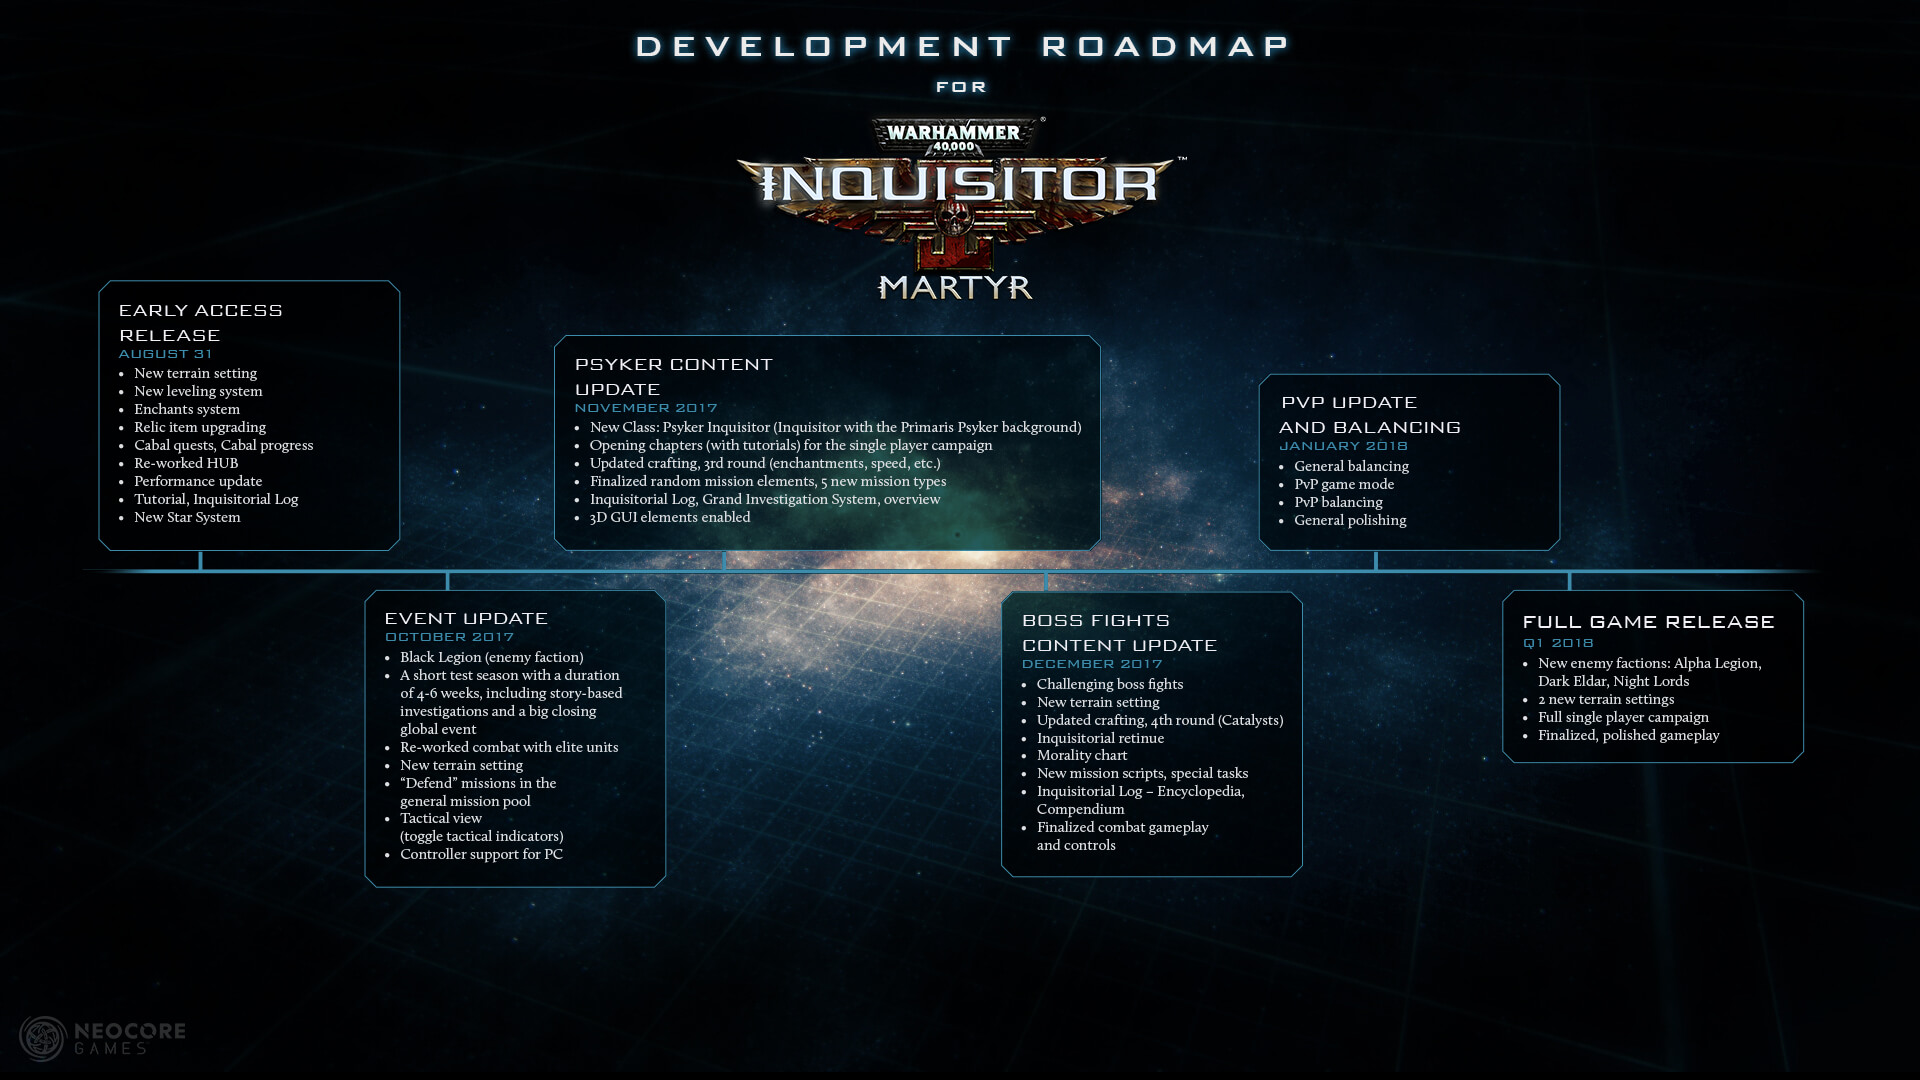 Warhammer 40,000 Inquisitor Martyr road map